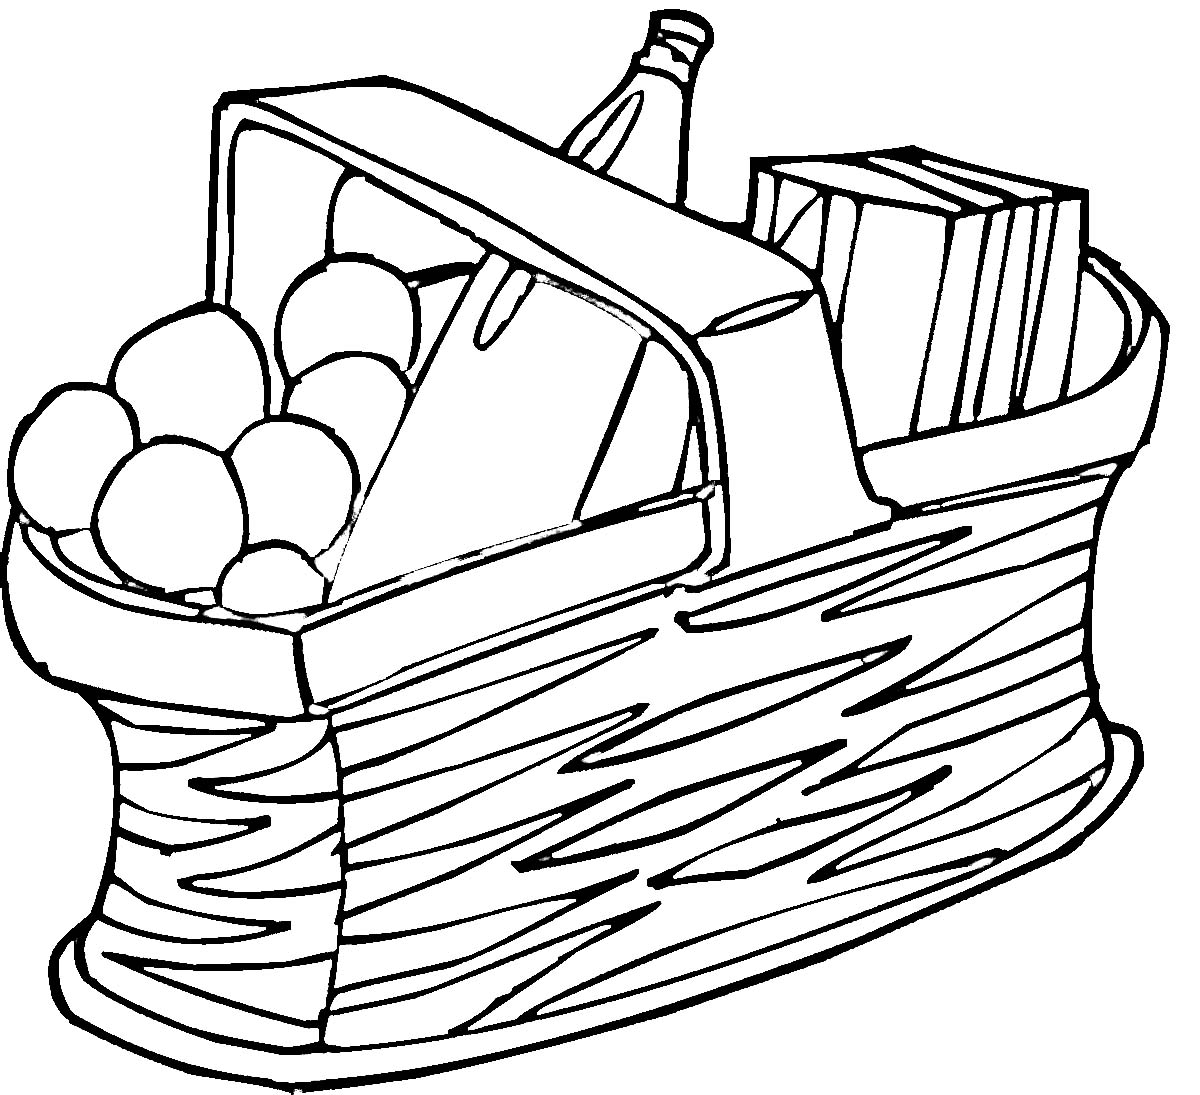 Picnic clipart black and white Free And picnic%20basket%20clip%20art%20black%20and%20white Basket Picnic